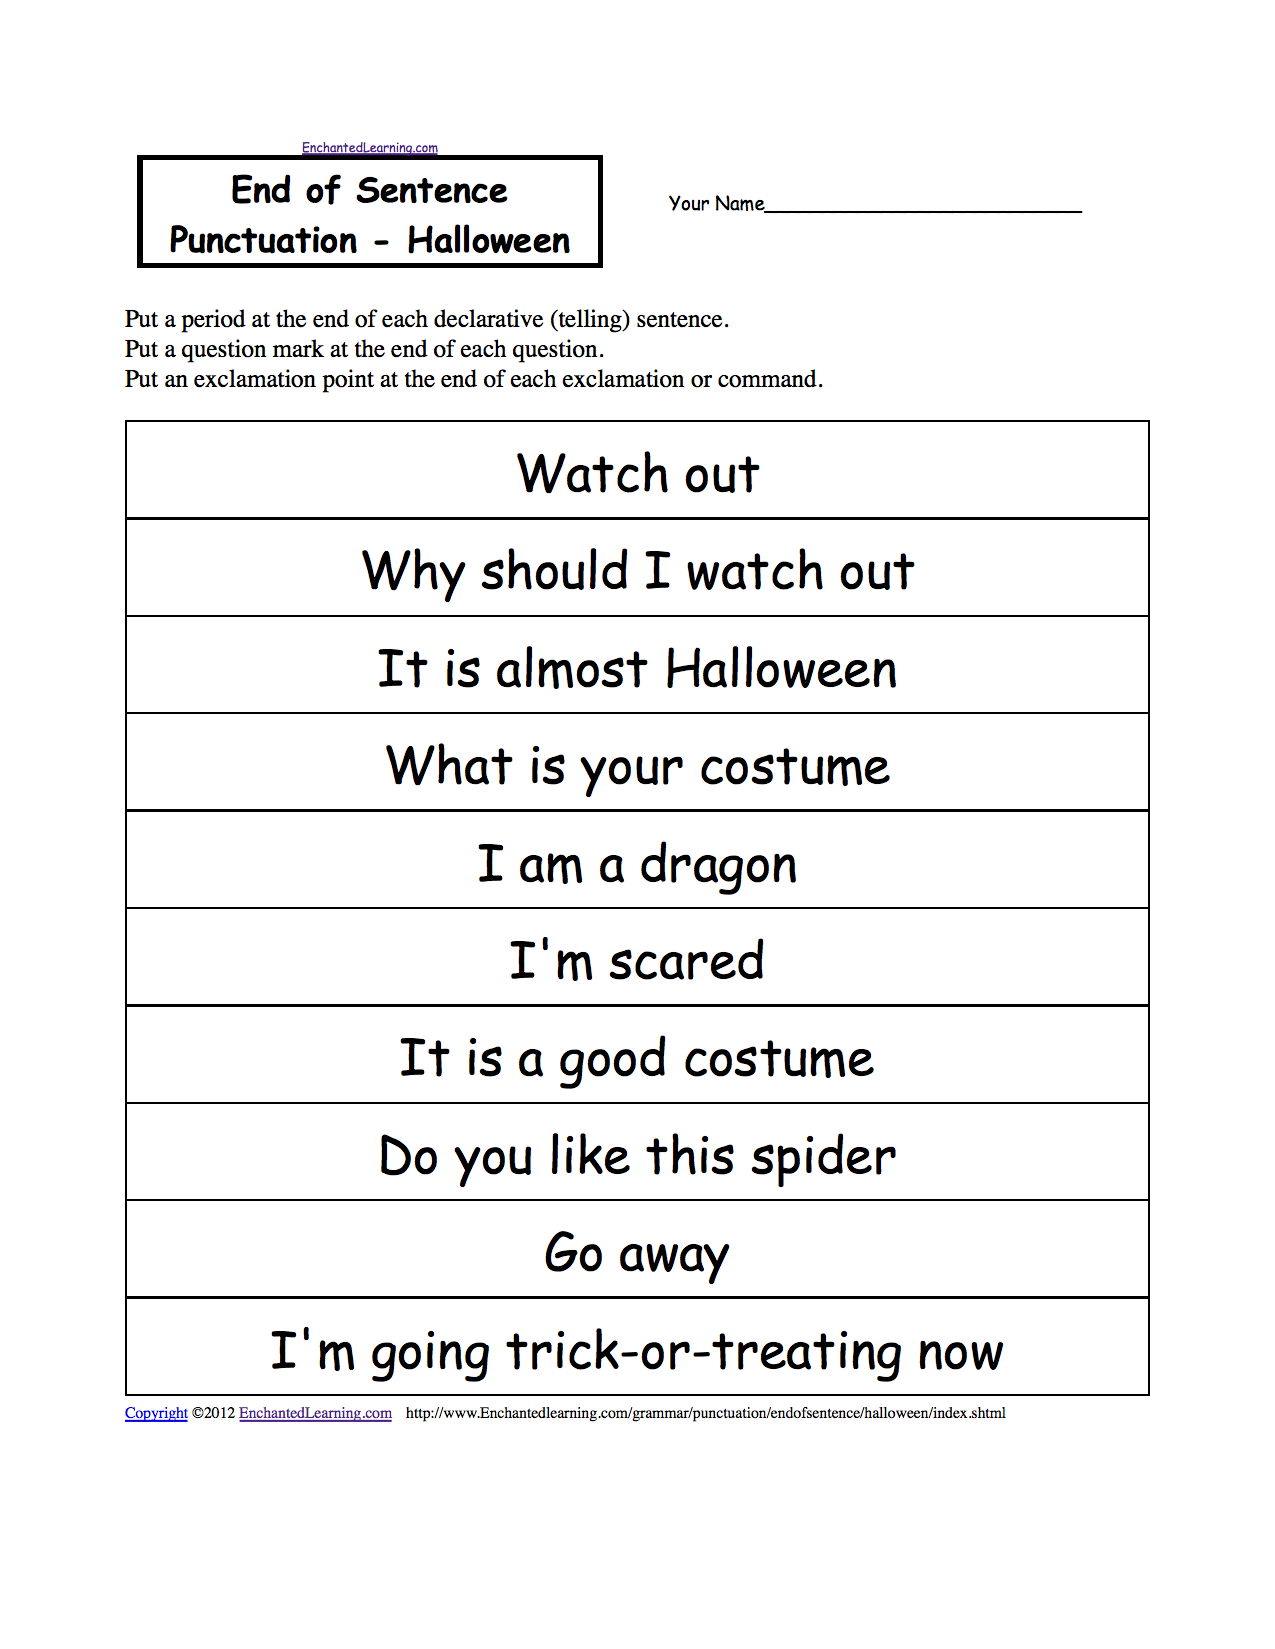 worksheet Facts And Opinions Worksheet halloween fact and opinion worksheets worksheet a around bat in adjectives or des